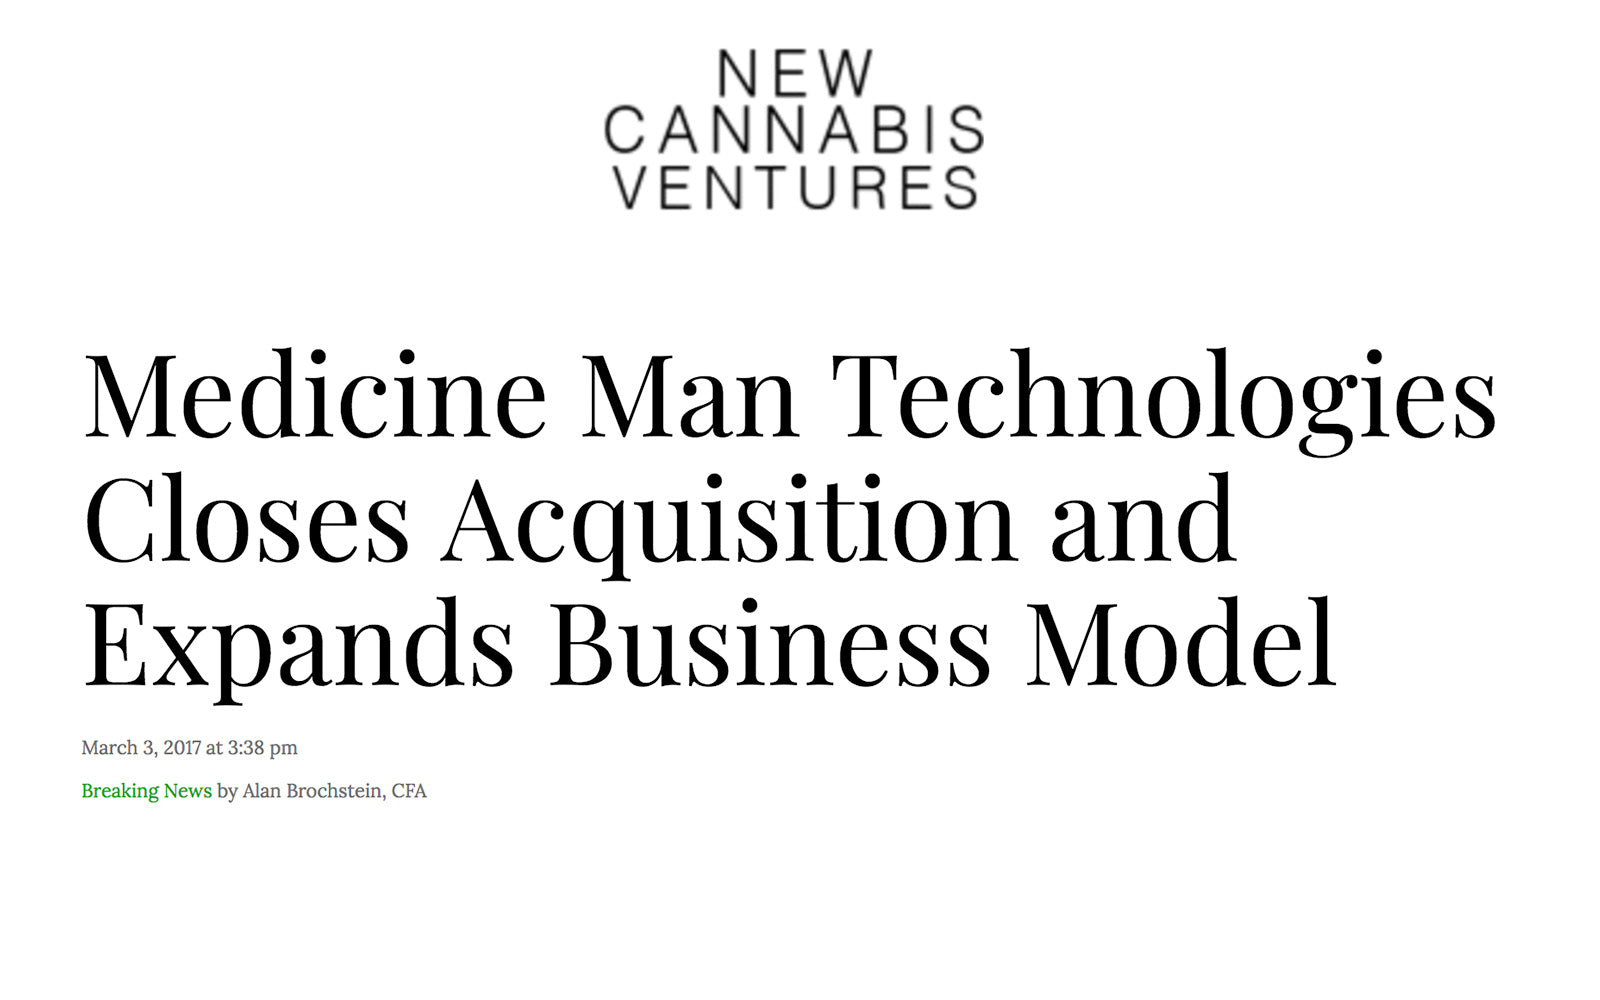 New Cannabis Ventures - Medicine Man Technologies Closes Acquisition and Expands Business Model